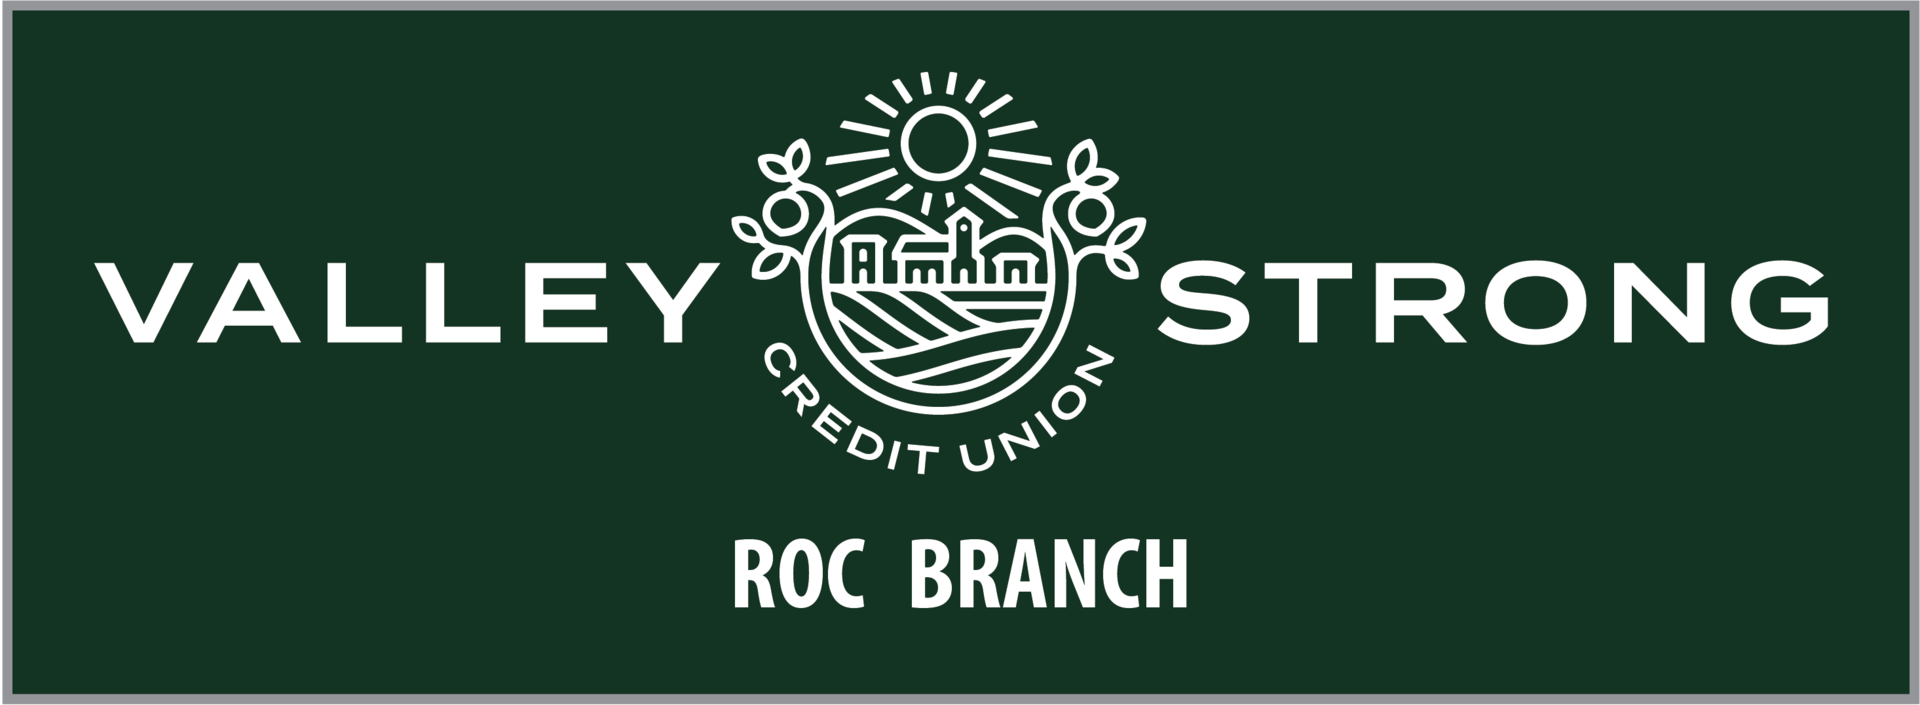 Valley Strong ROC branch